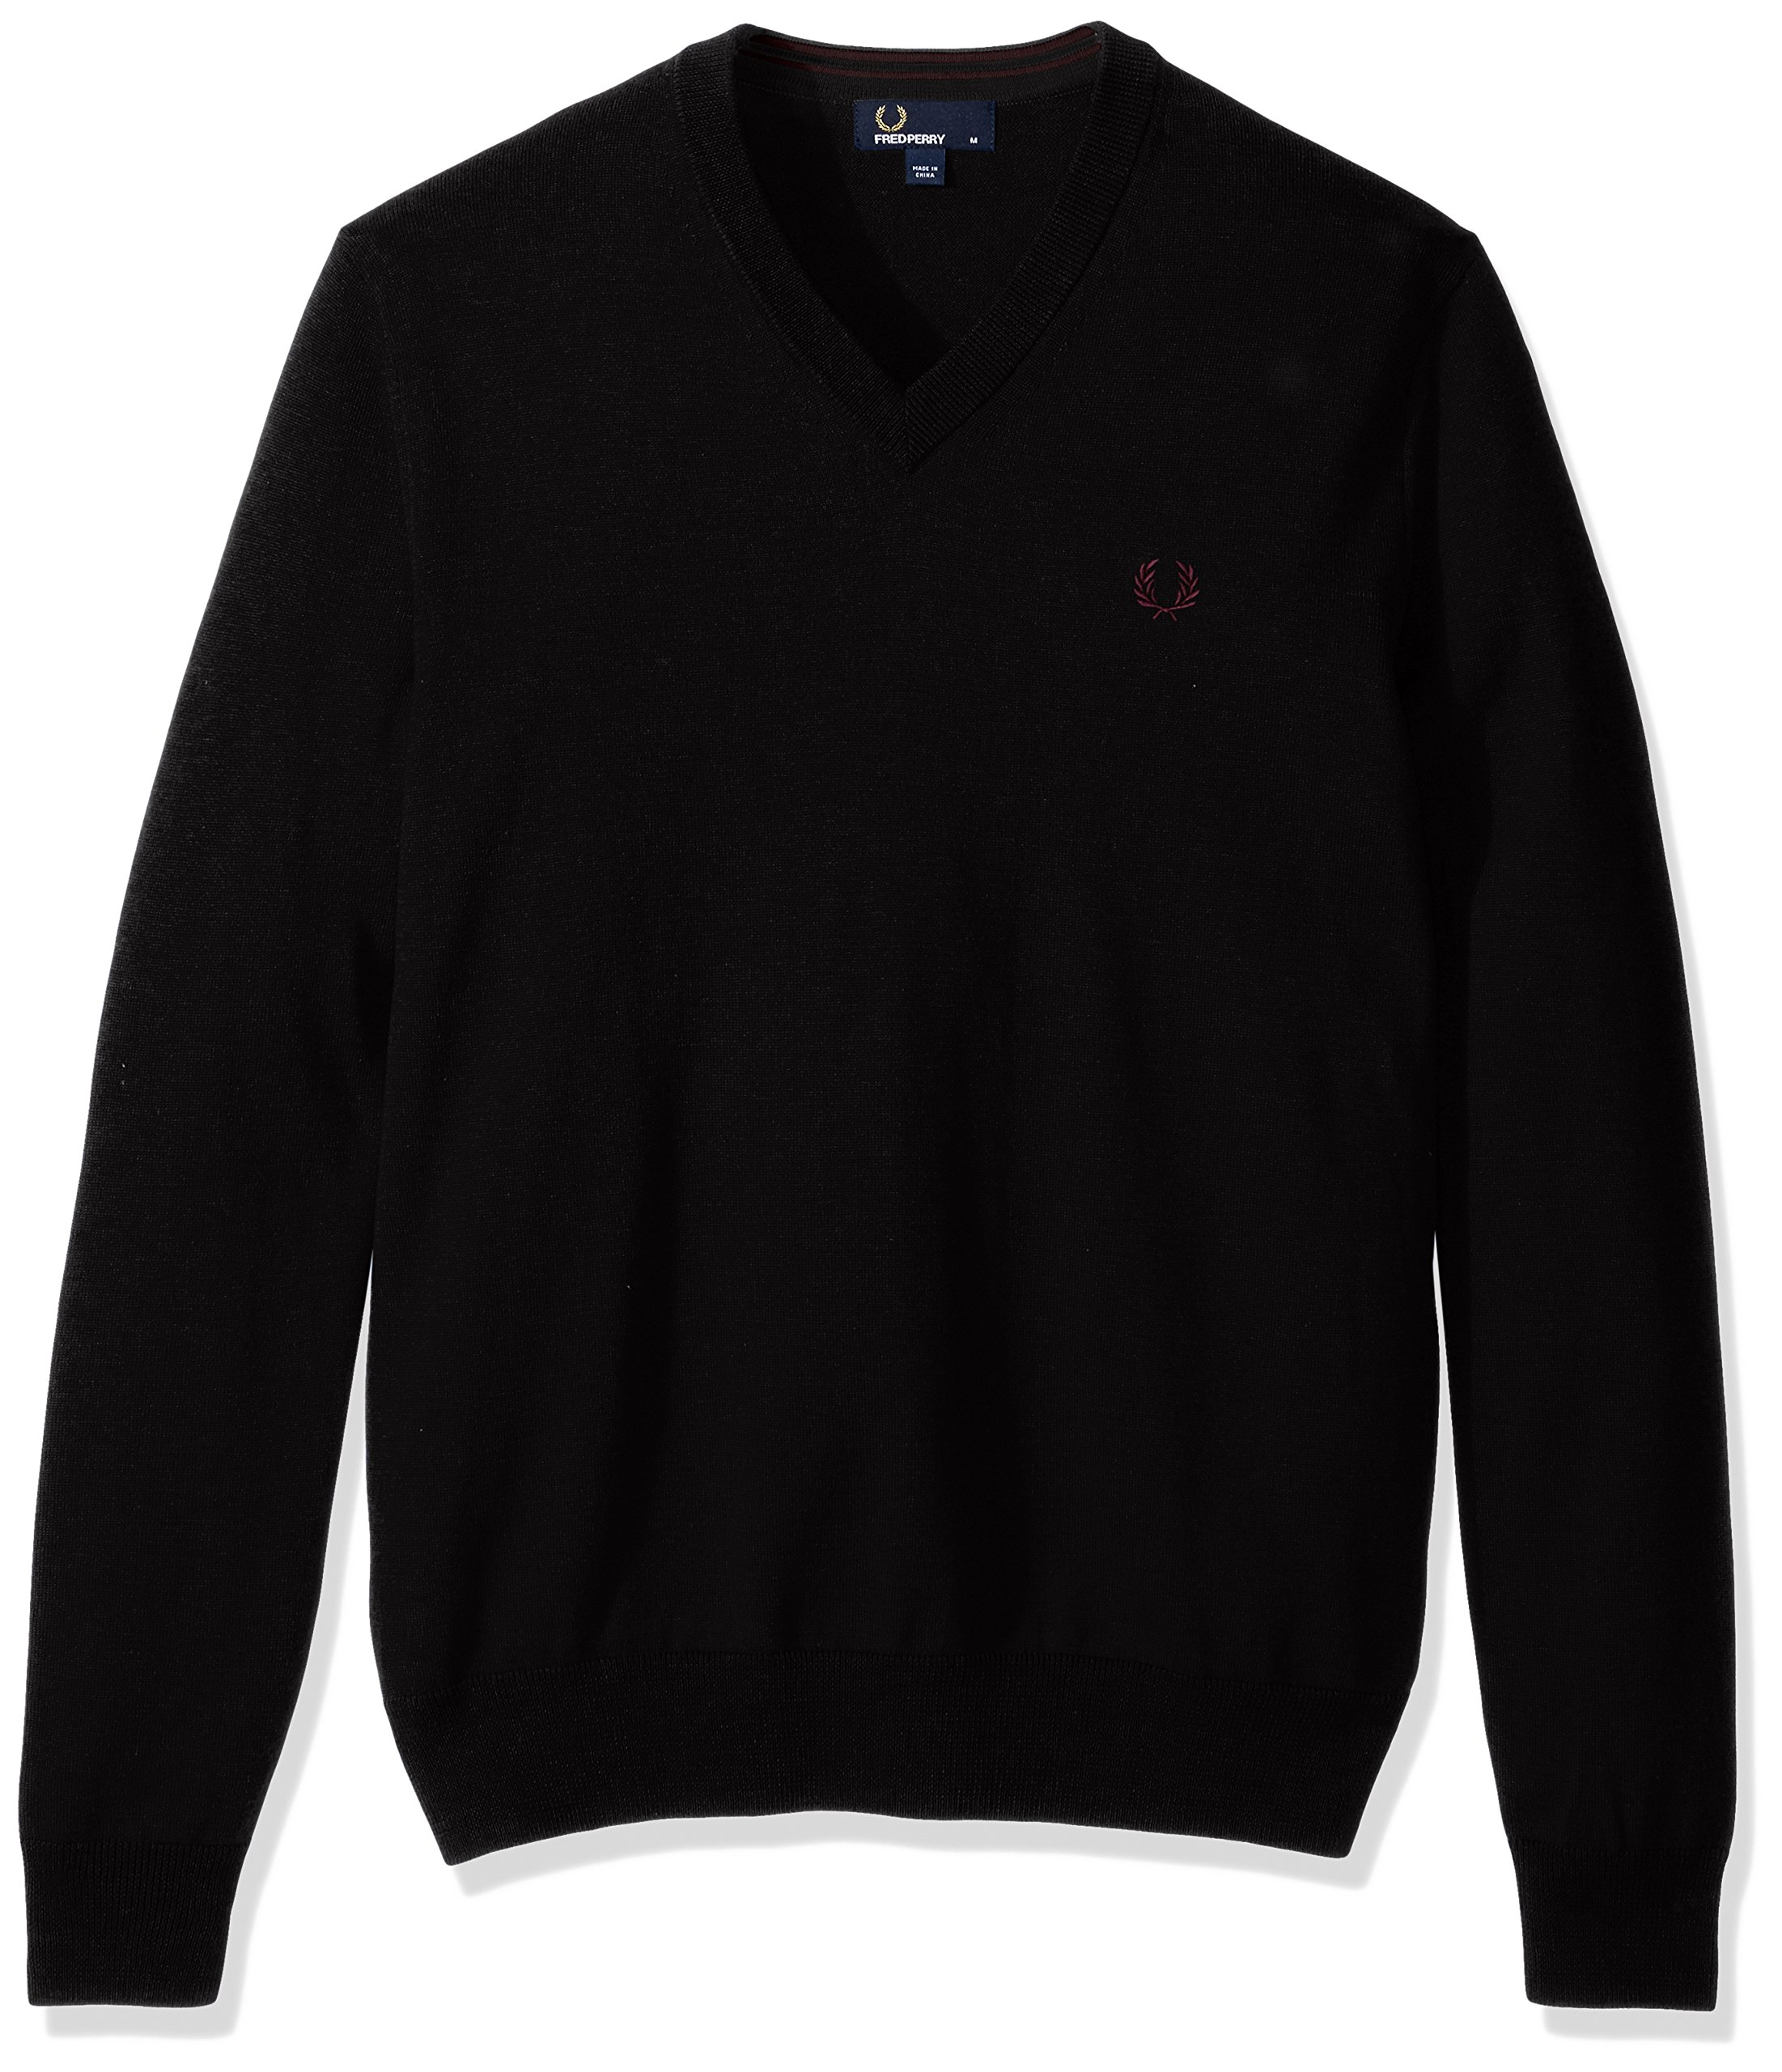 Fred Perry Men's Classic Cotton V-Neck Sweater, Black, X-Large